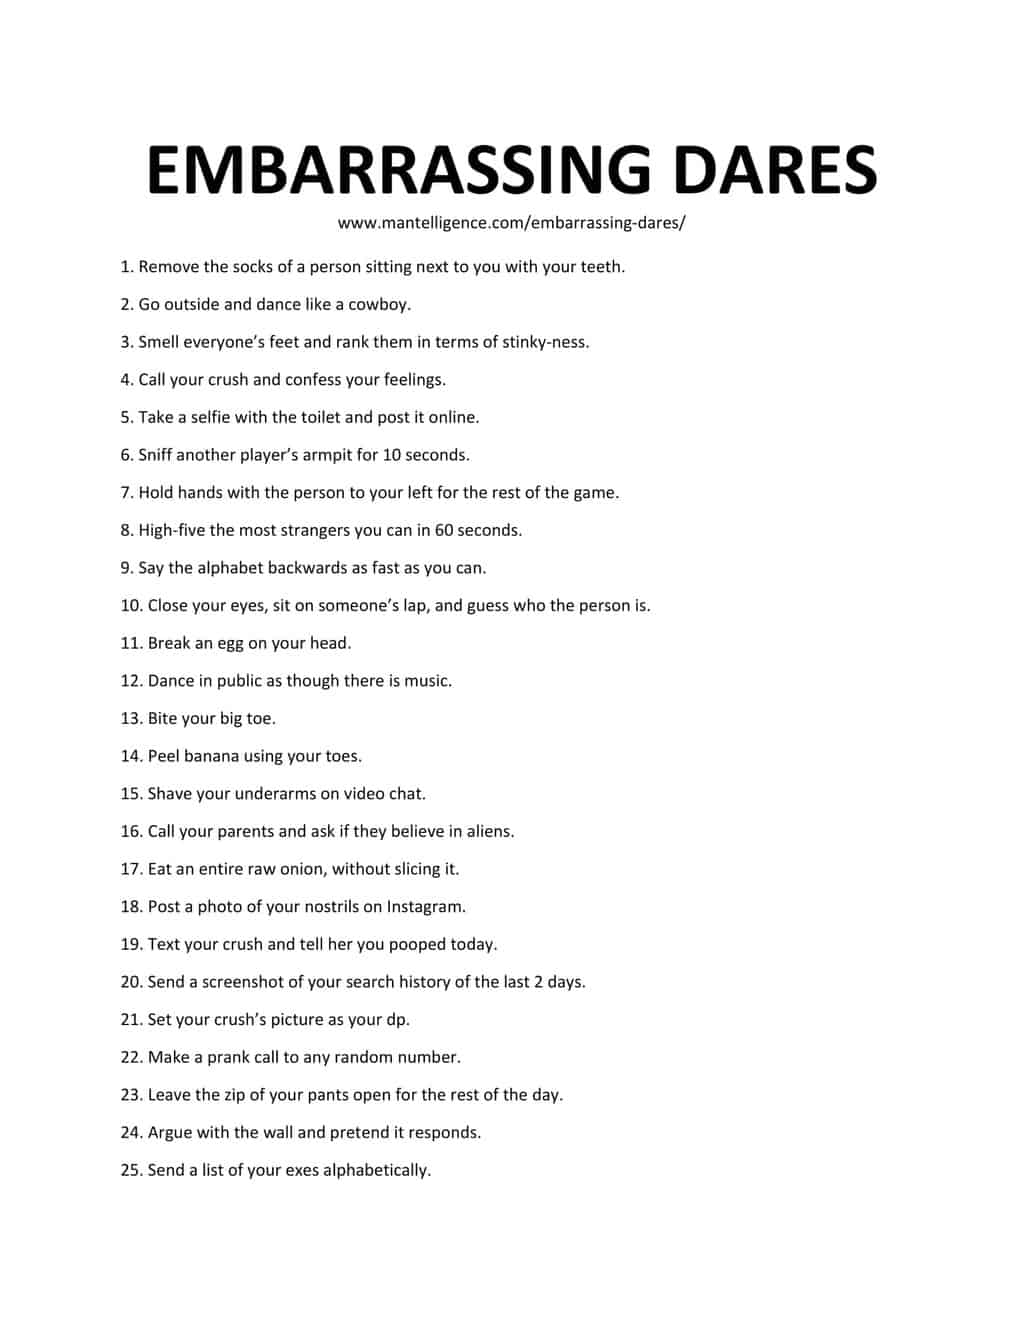 Clever dares